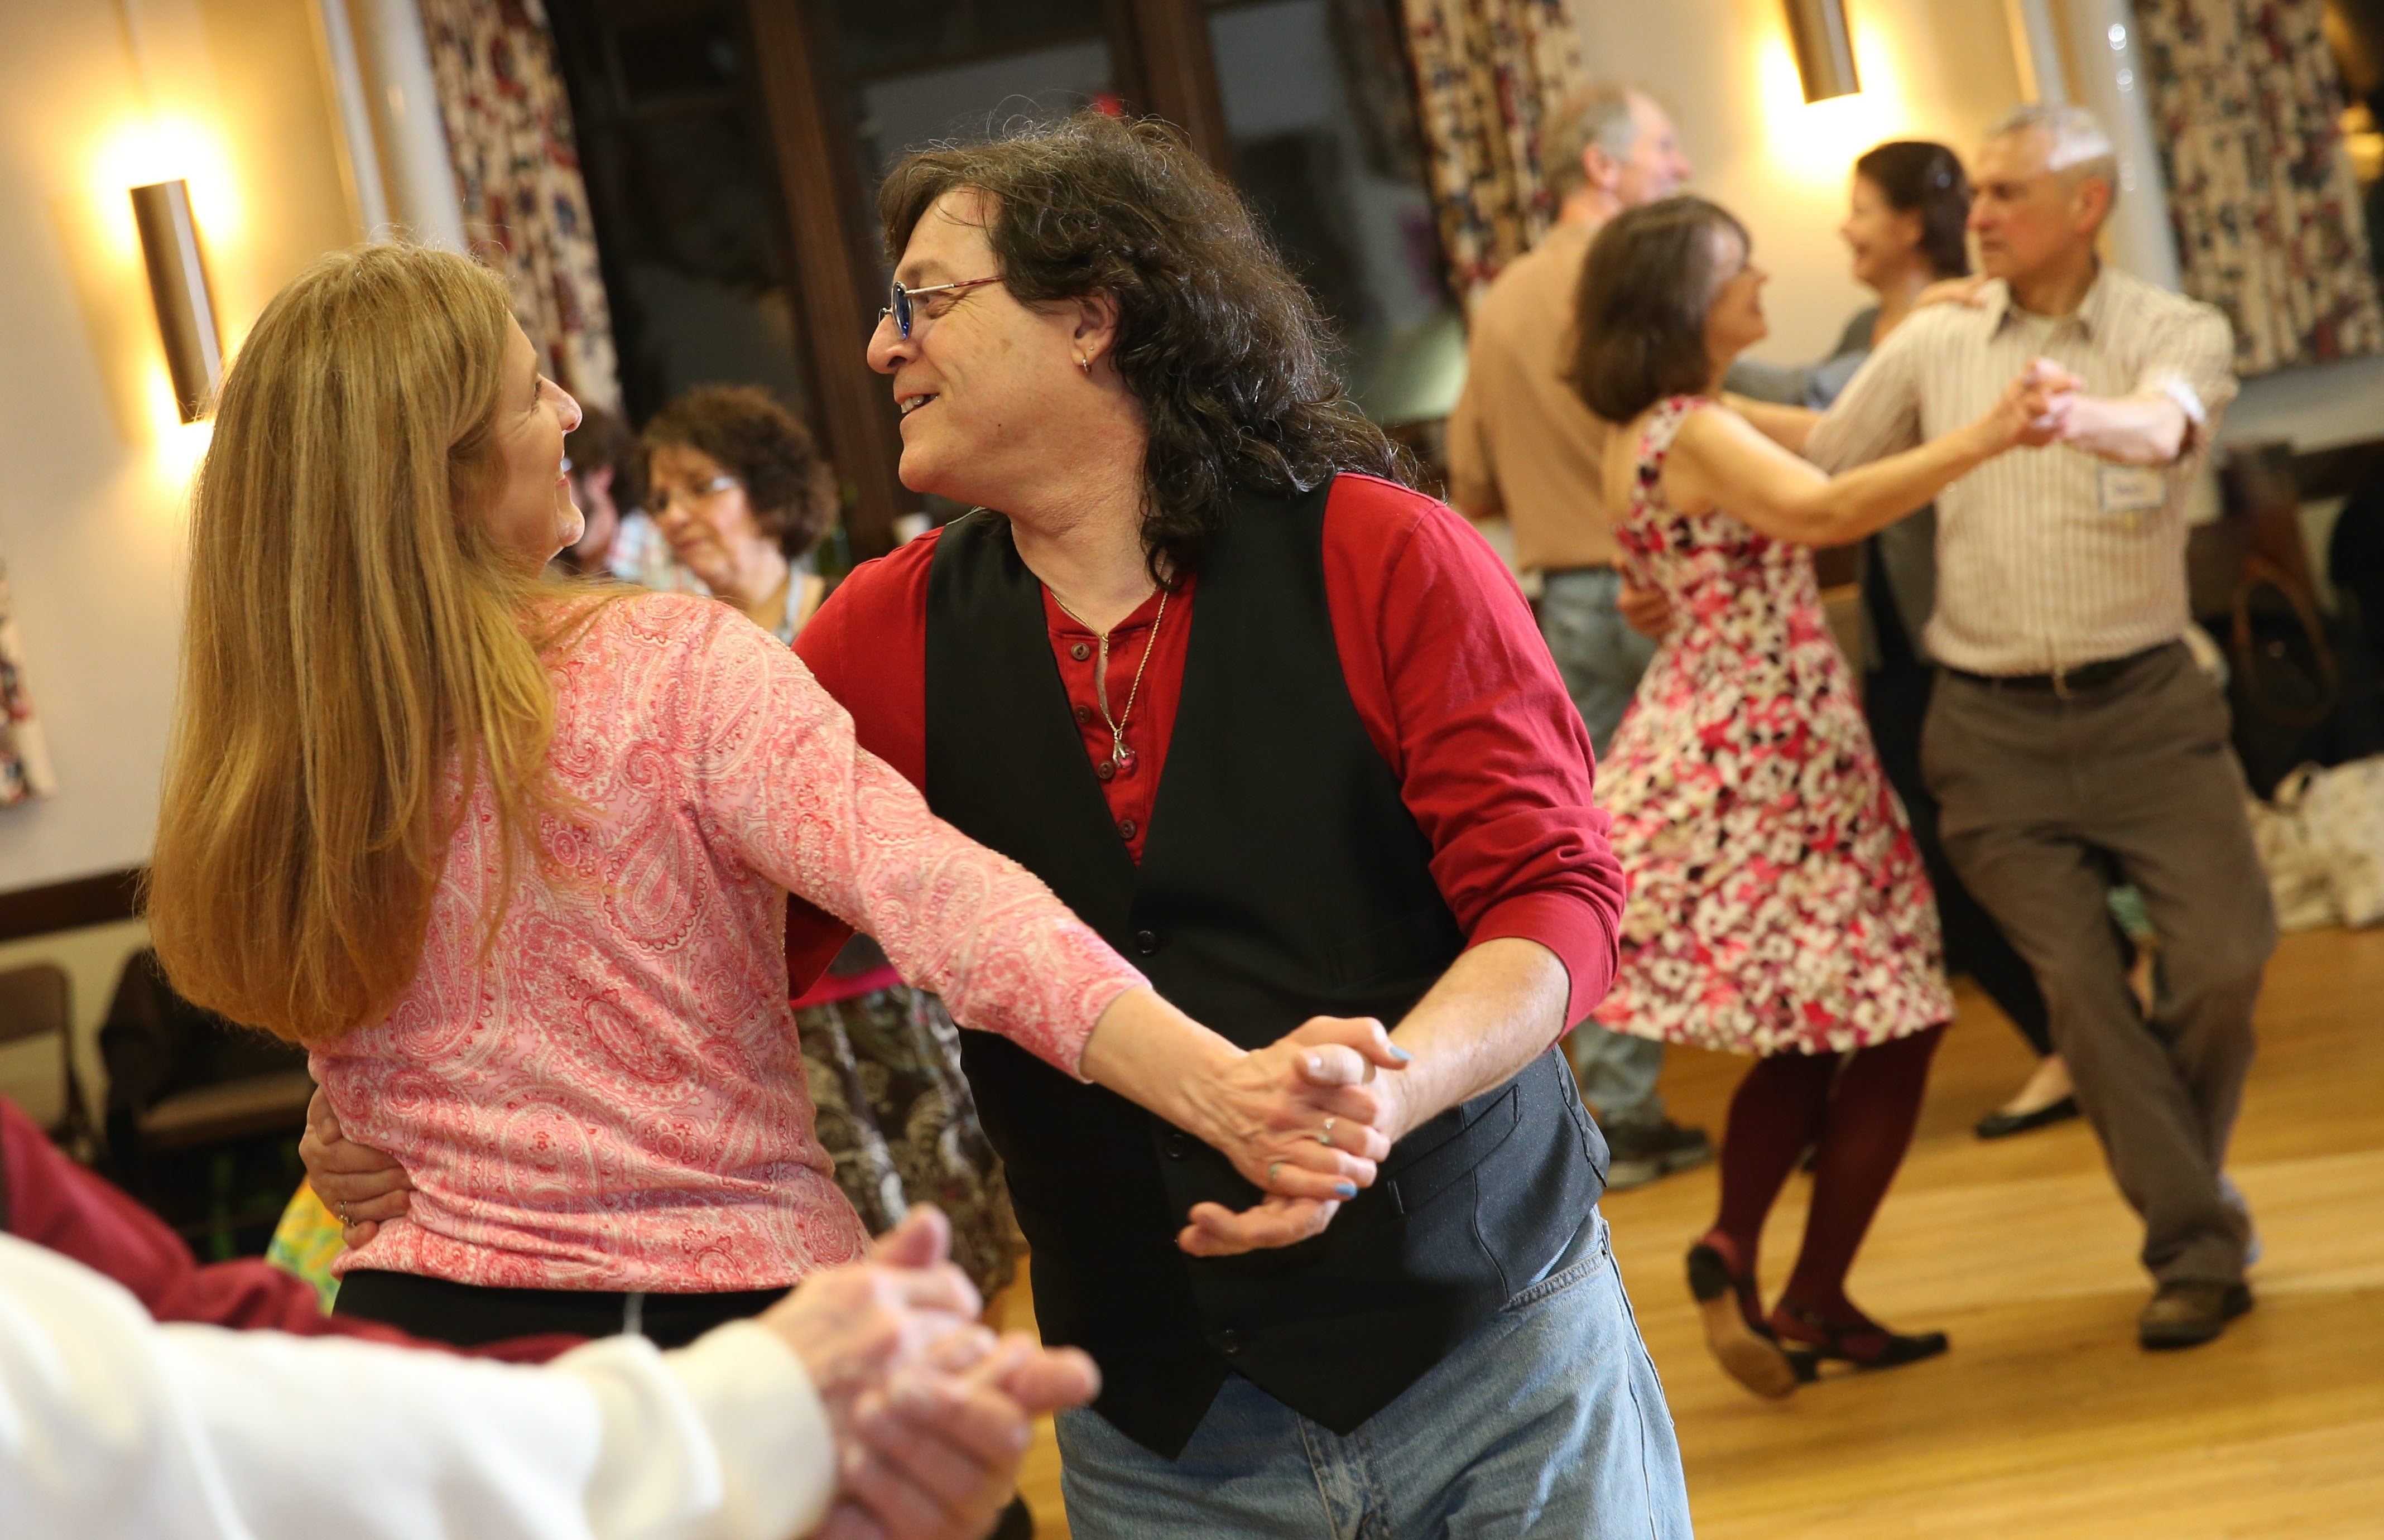 The Queen City Contra Dancers meet at Unitarian Universalist Church on Elmwood Avenue every first and third Saturday to enjoy the dancing style that's similar to square dancing.